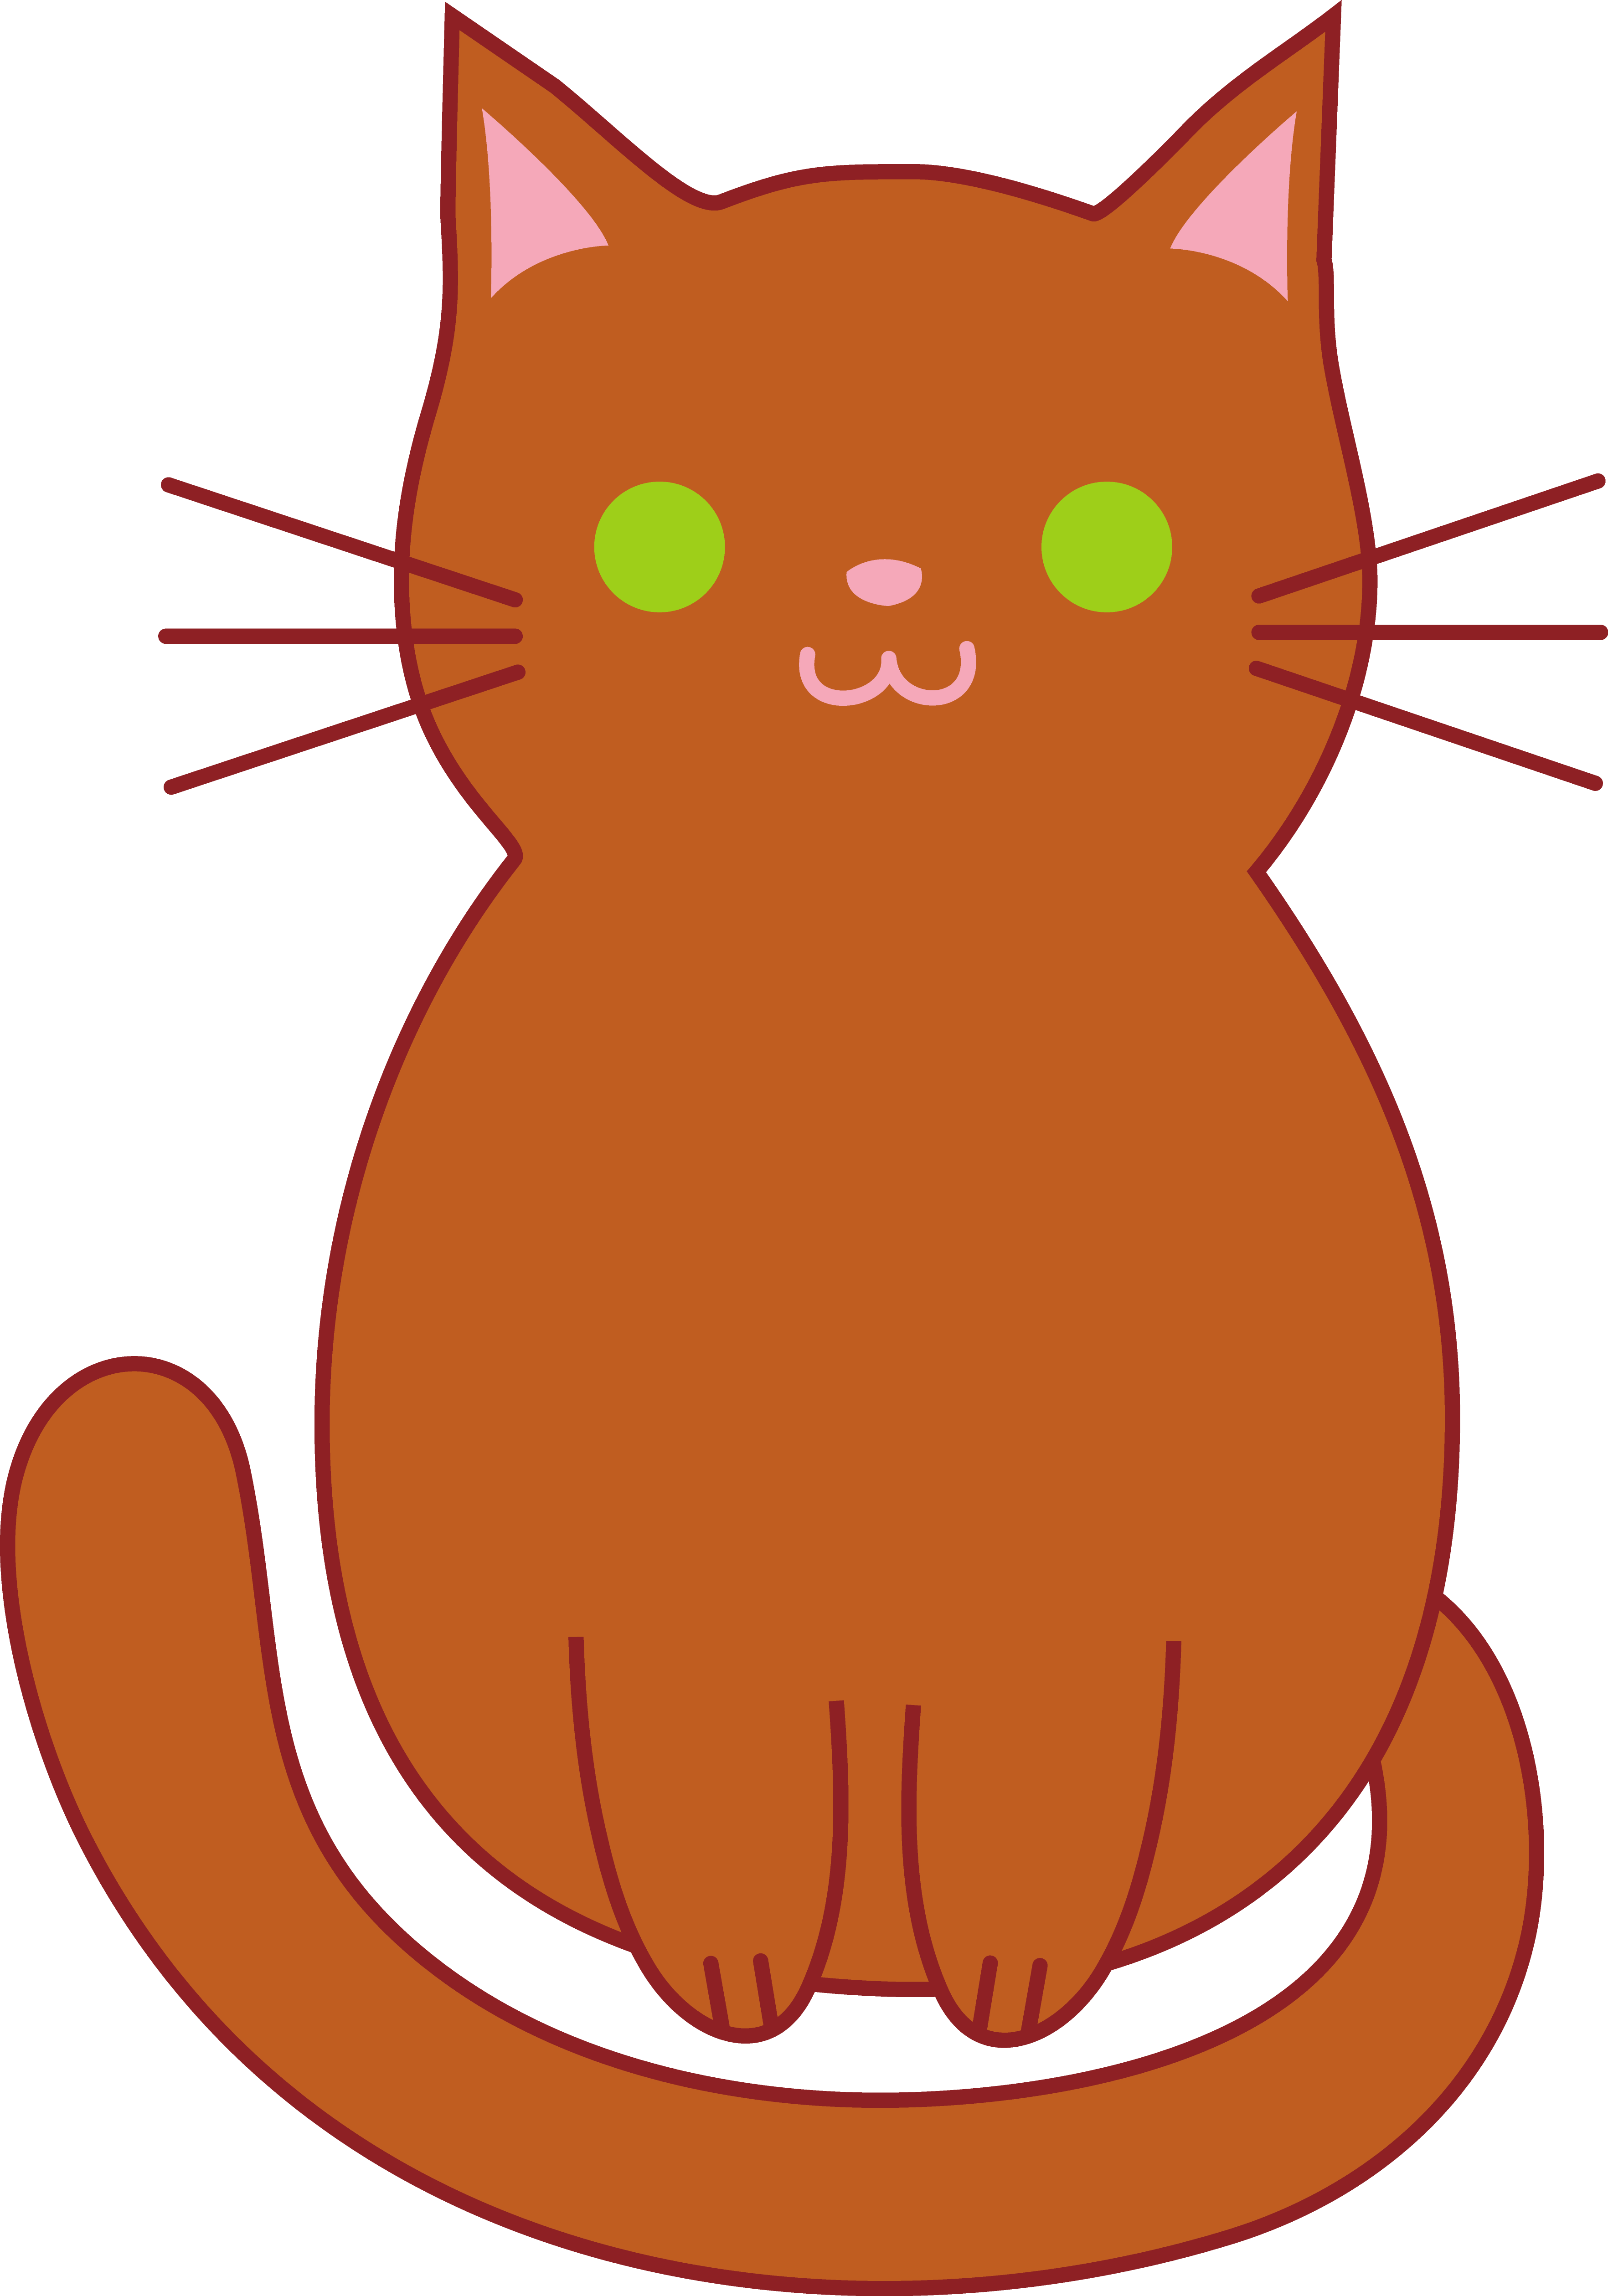 3528x5039 Collection Of Cats Clipart Cartoon High Quality, Free